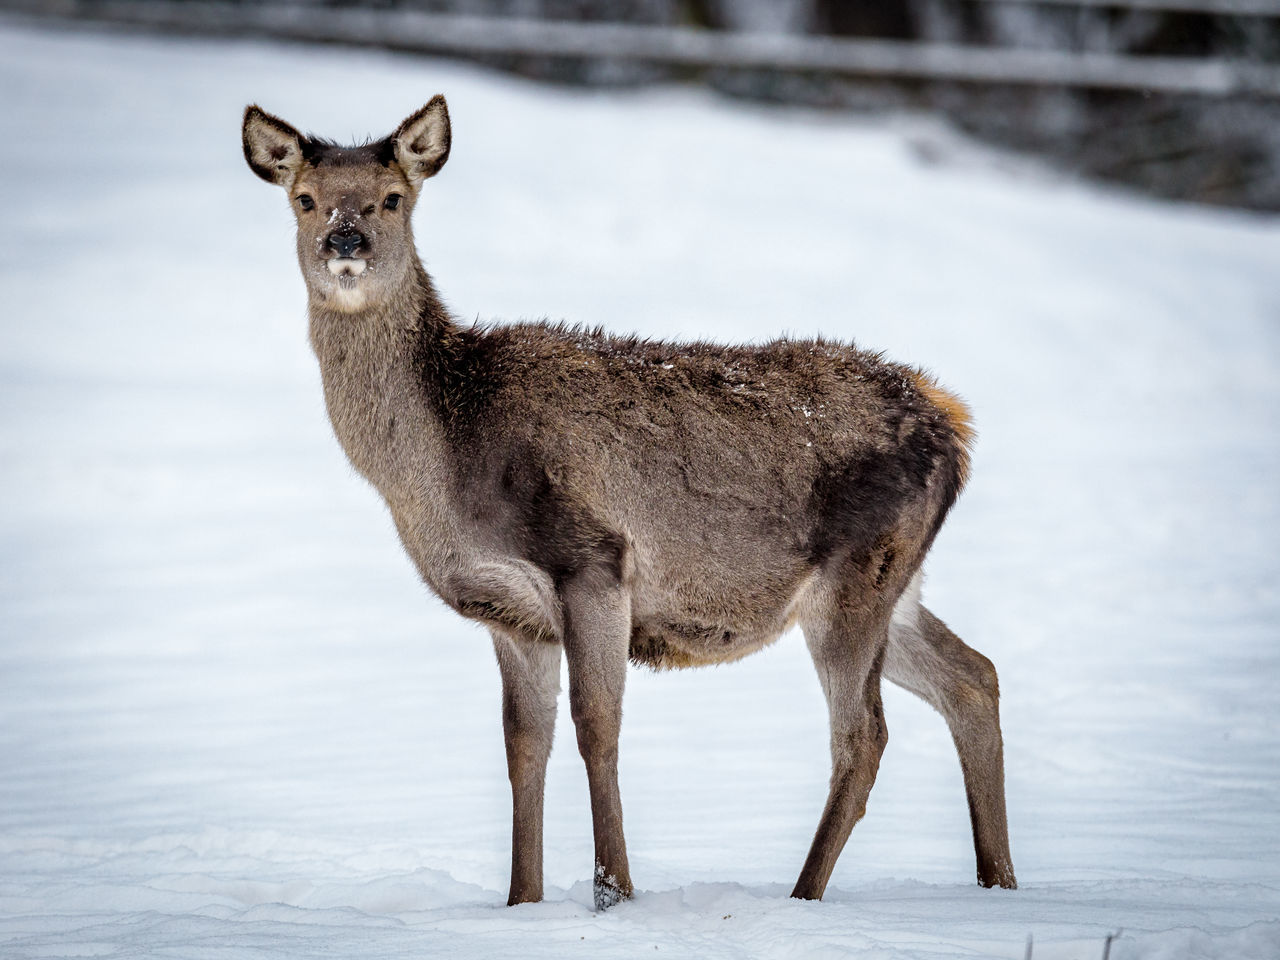 Animal Themes Deer Deer In Winter Doe One Animal Reh Roe Deer Standing Zoology